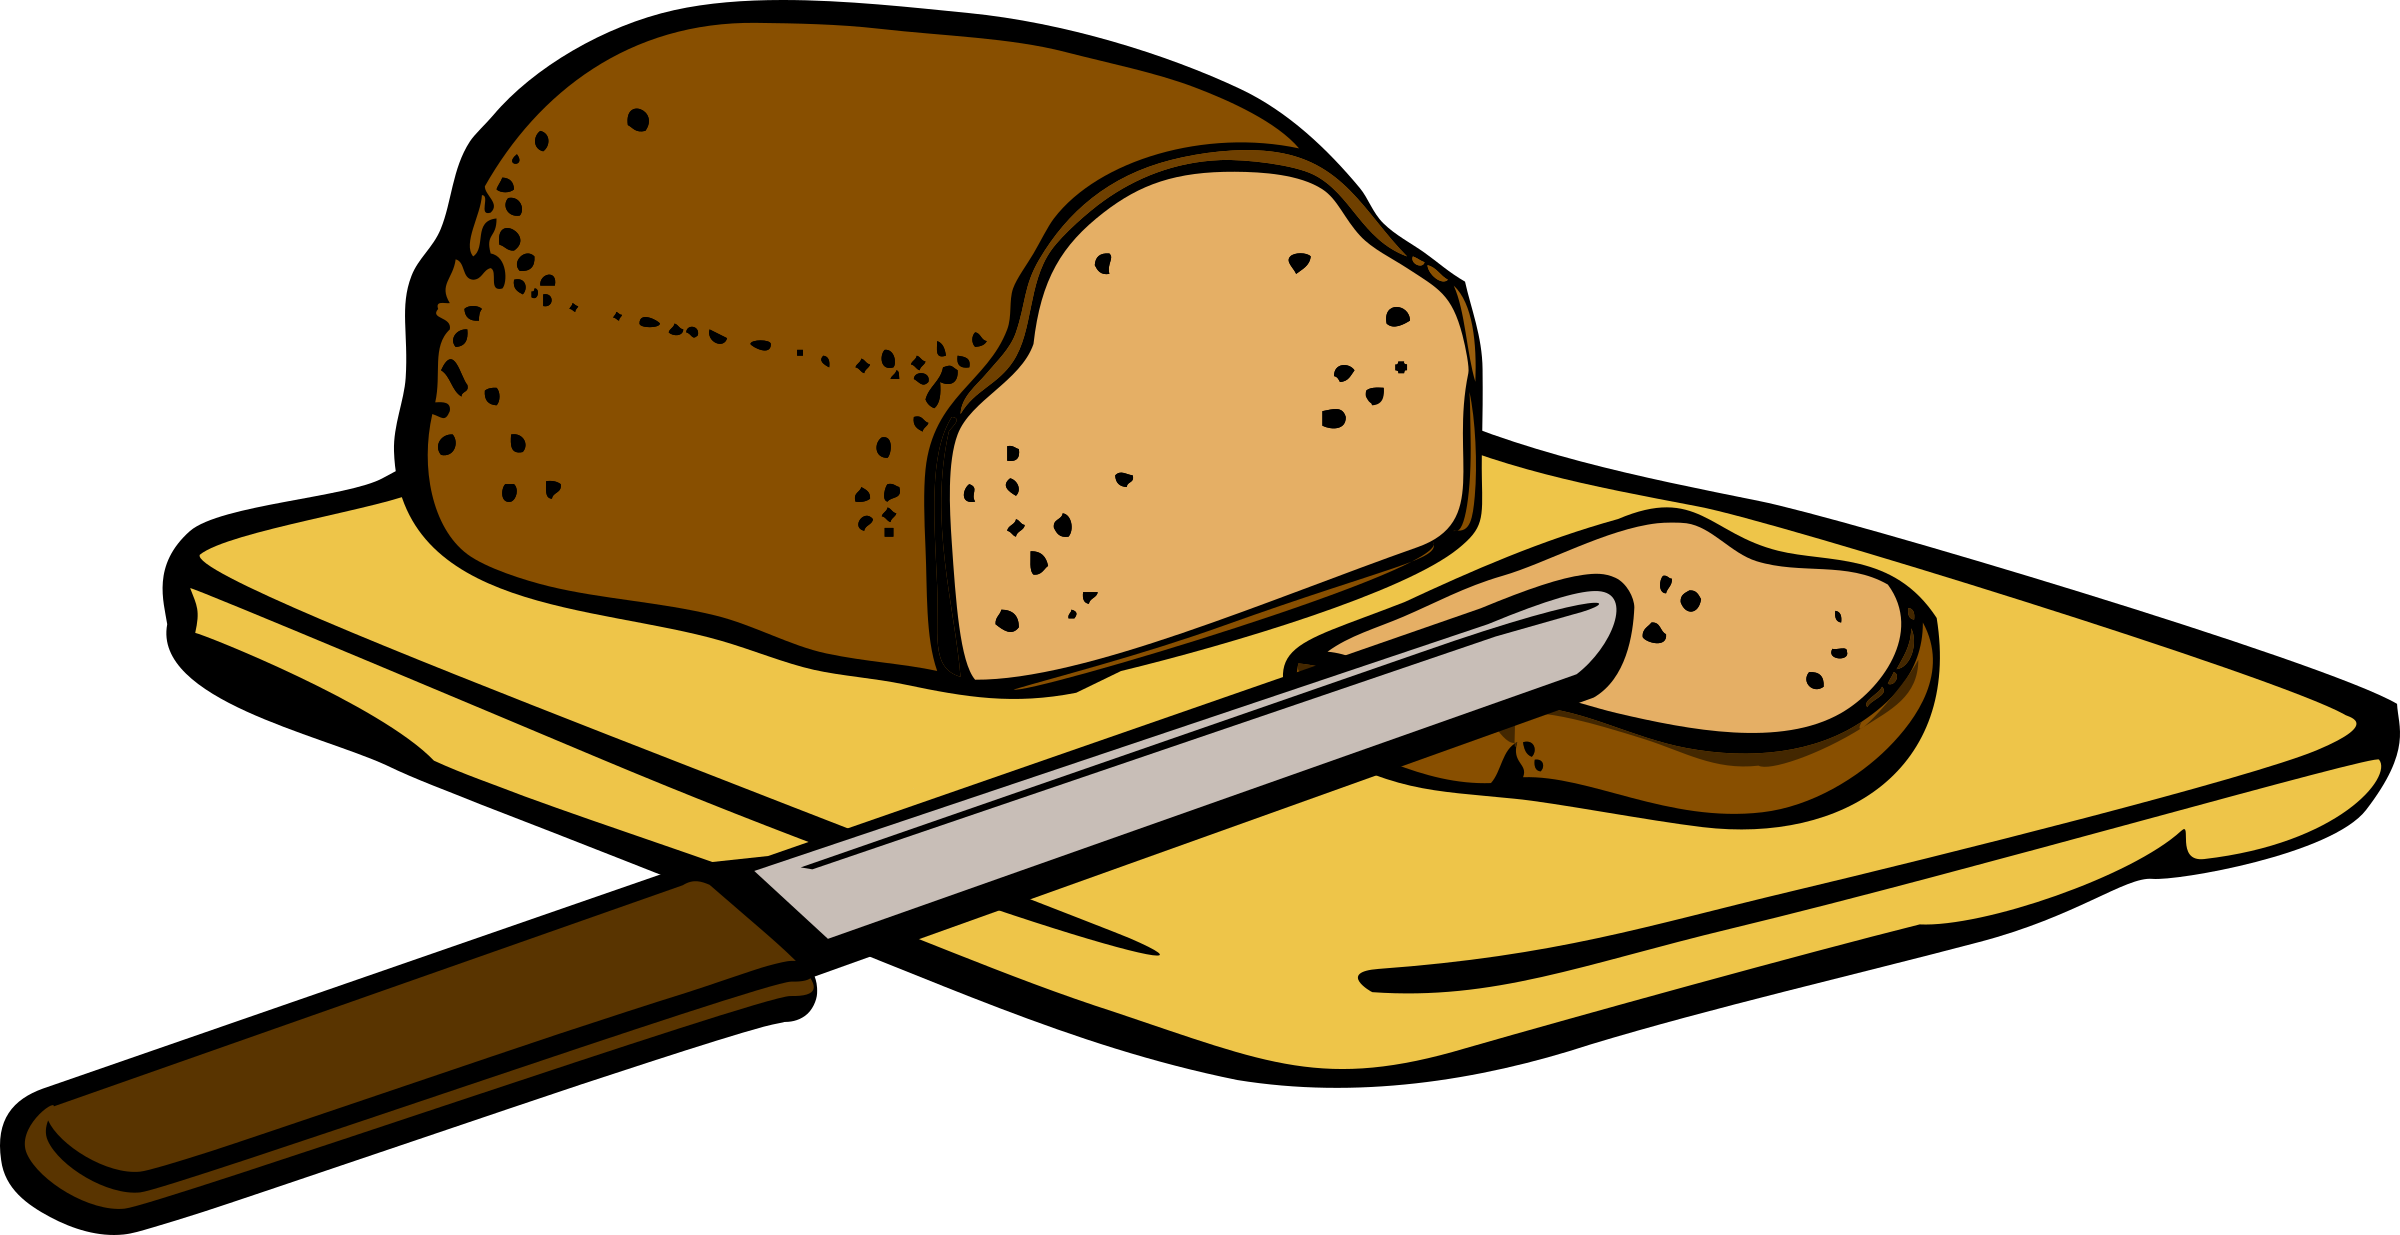 jpg library download Bread clipart breakfast bread. With knife on cutting.